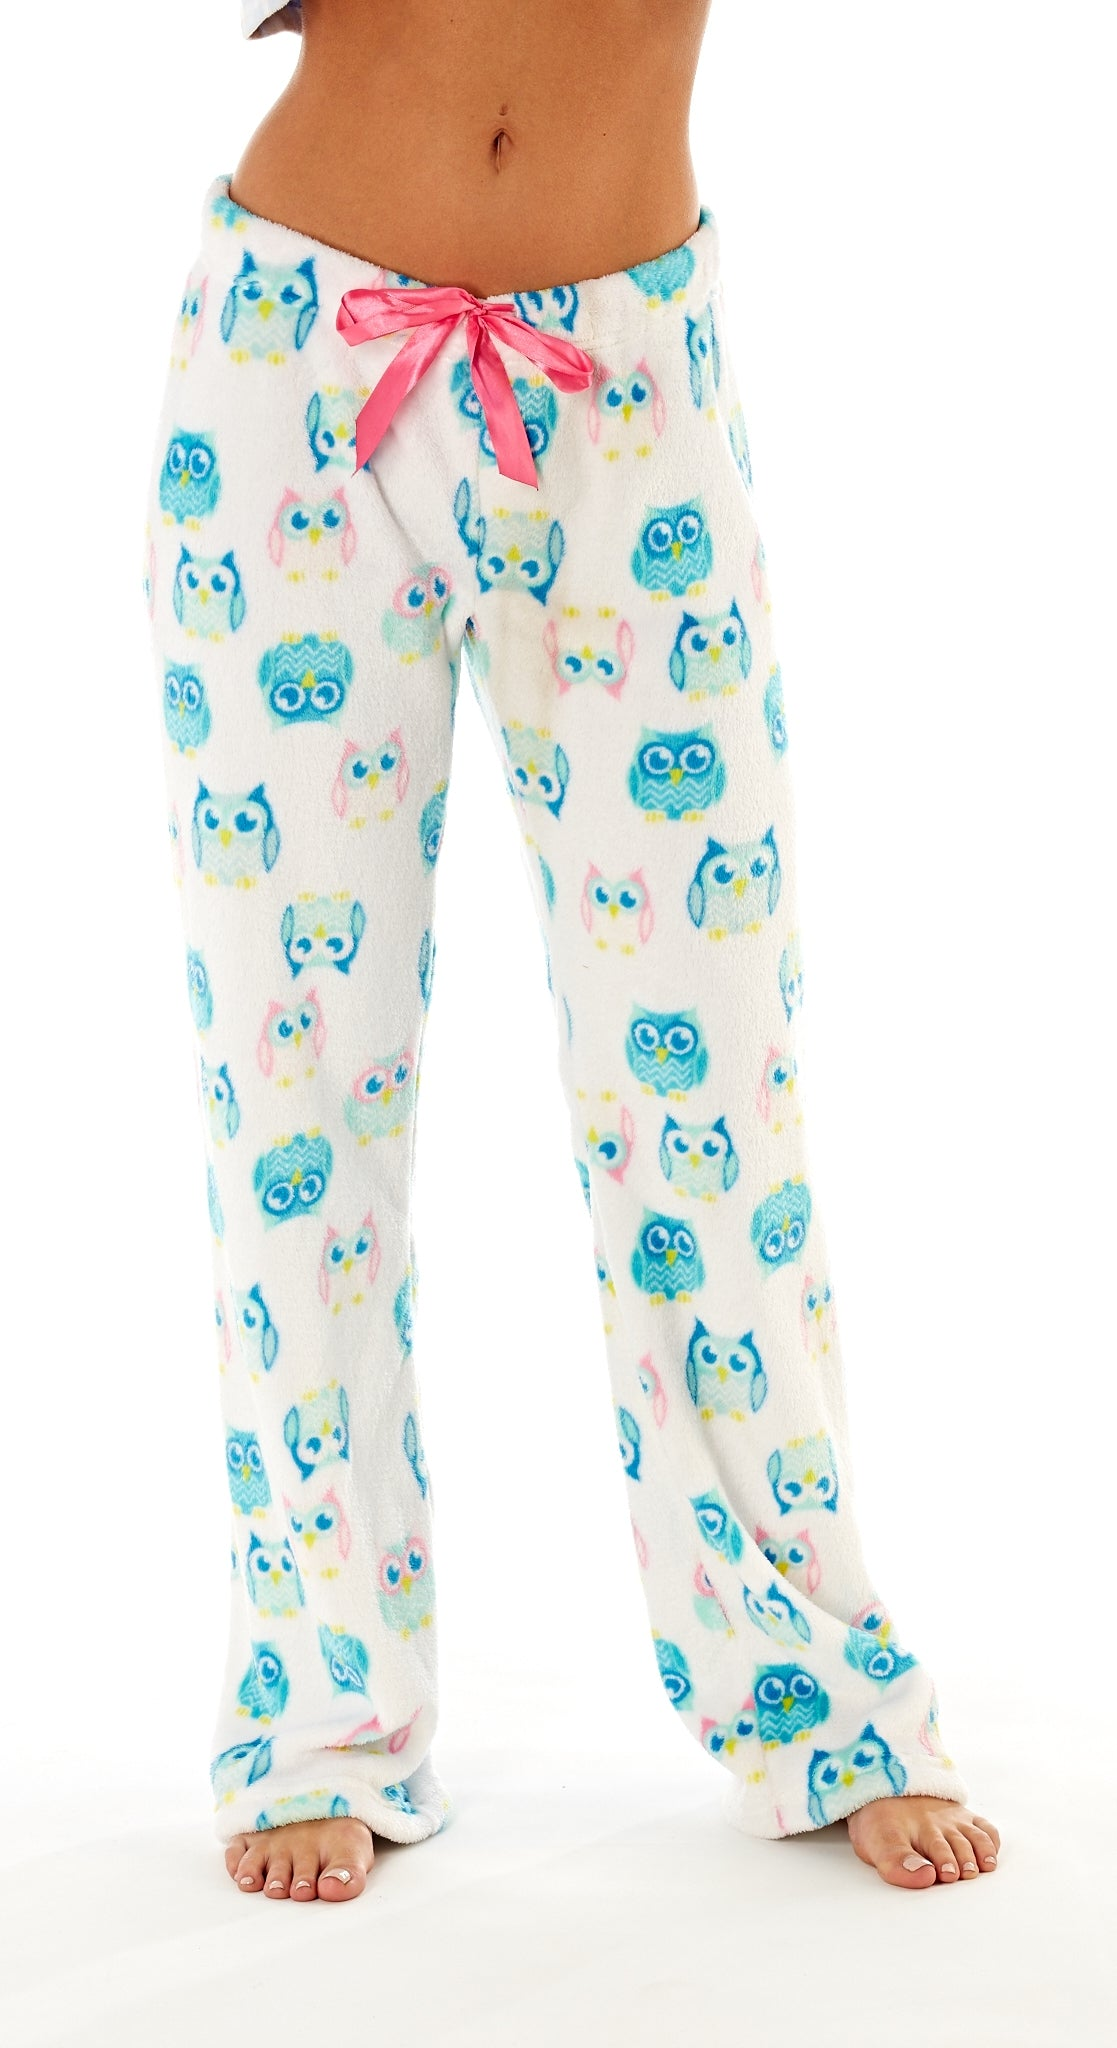 Octave Ladies Loungewear Pants Pyjama Bottoms - Owl